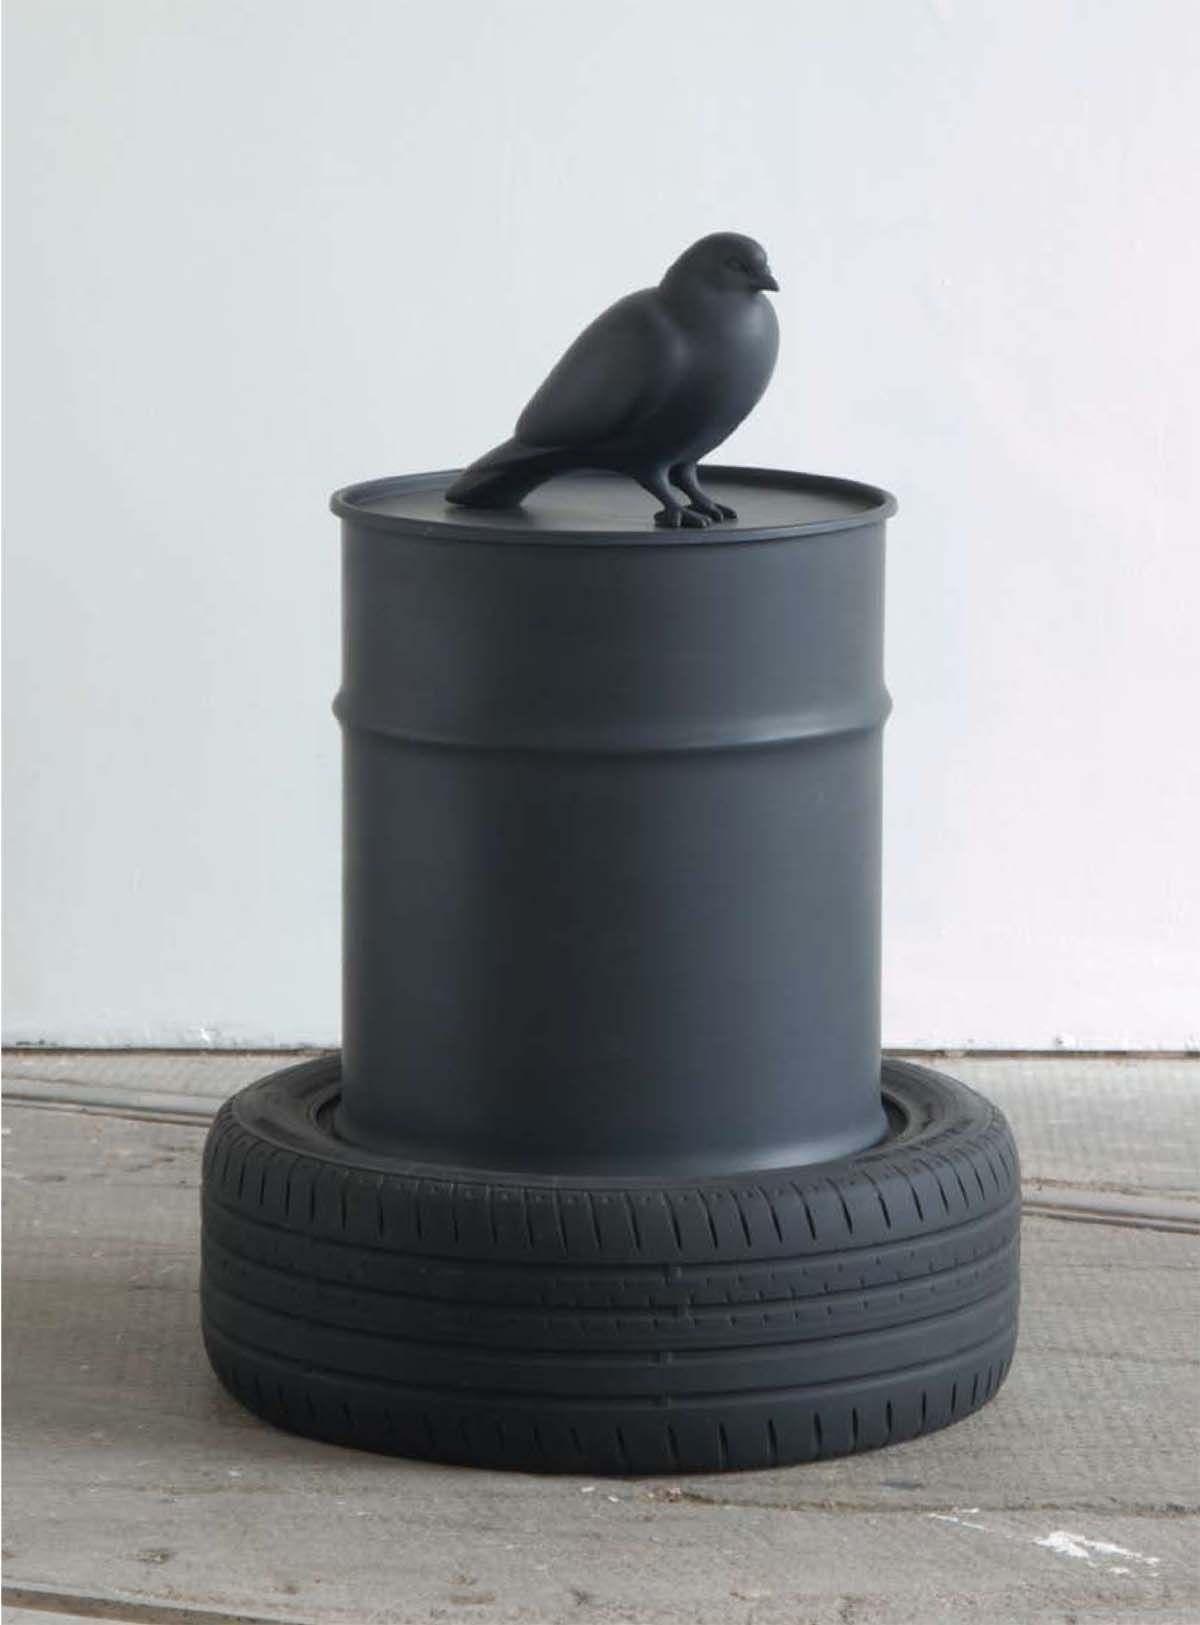 Kenny Hunter The Wasteland resin, oil can, jesmonite, paint, 35 x 25 x 25 inches sculpture